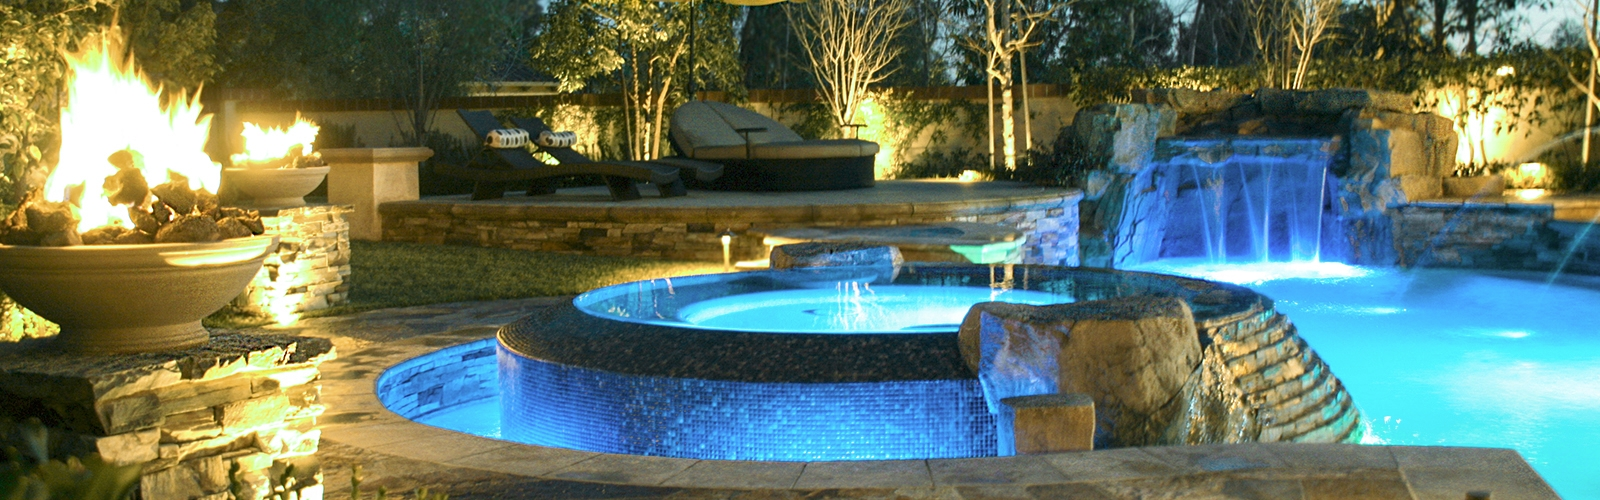 Aquanetic Pools and Spas (@aquaneticpools) Cover Image